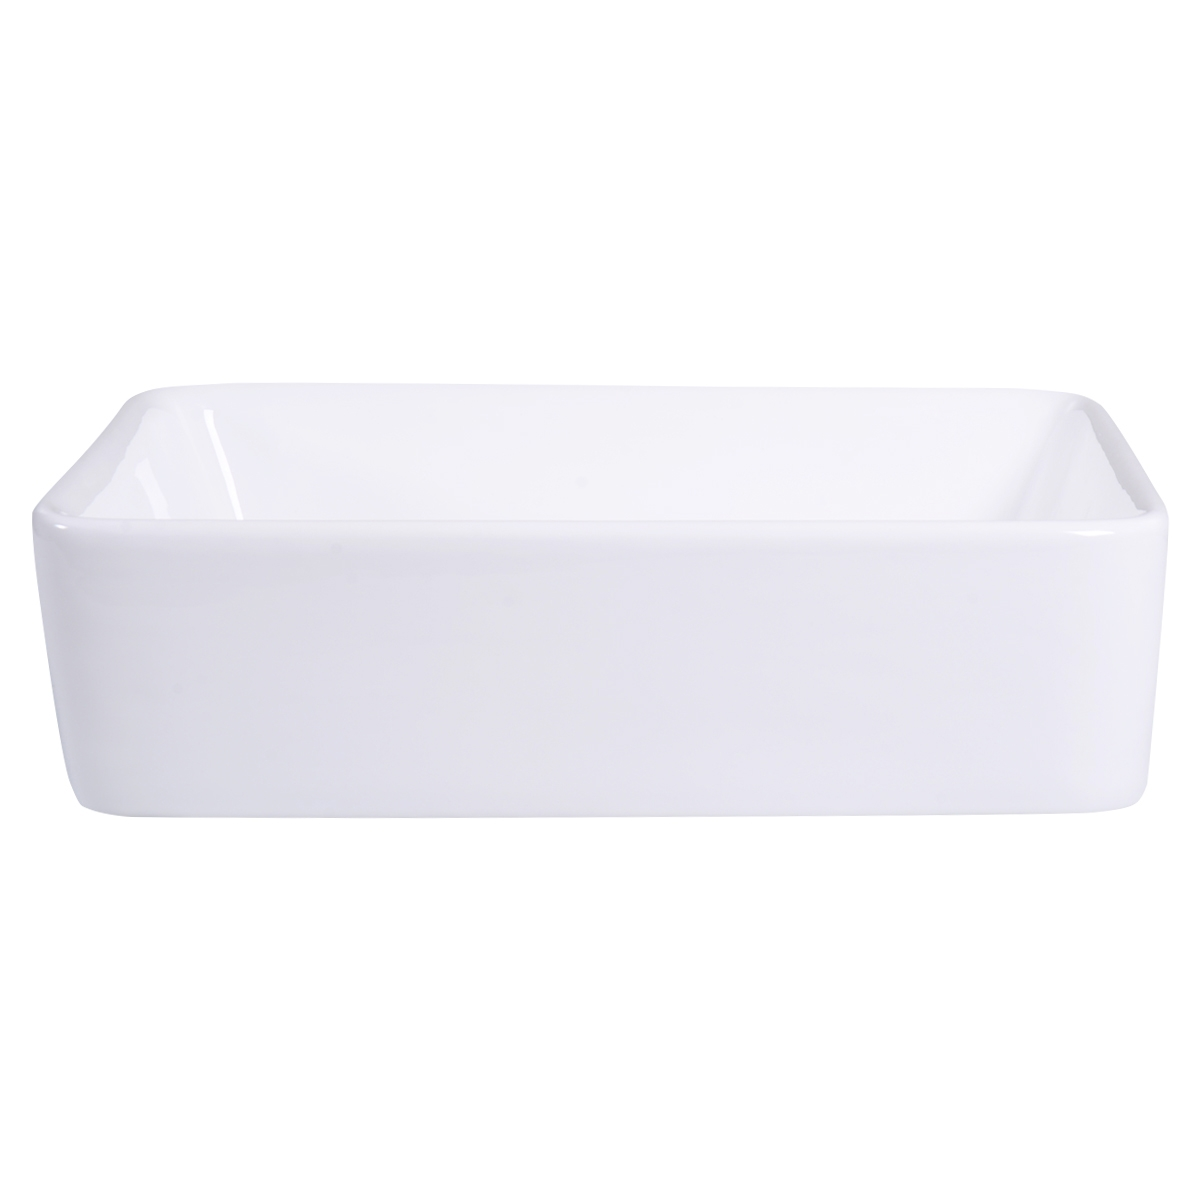 Bathroom Rectangle Ceramic Vessel Sink